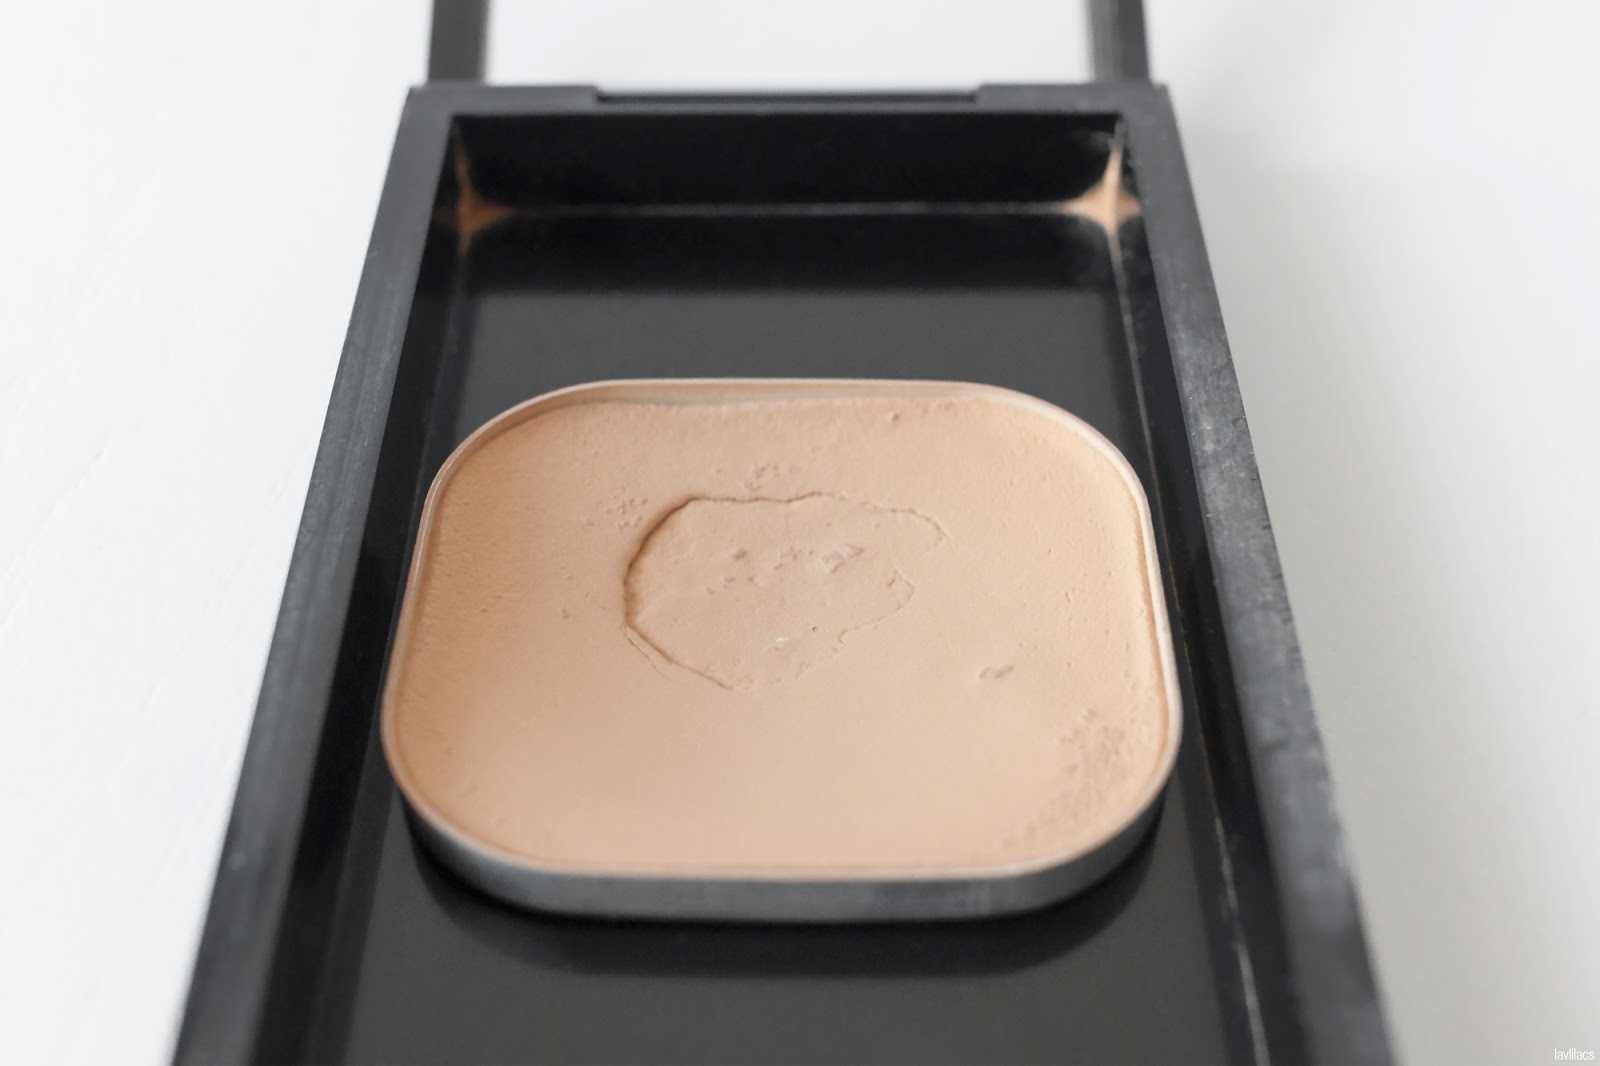 lavlilacs 2018 Project Make a Dent - beginning - Kate Lasting High Coverage Powder Foundation in OC-C